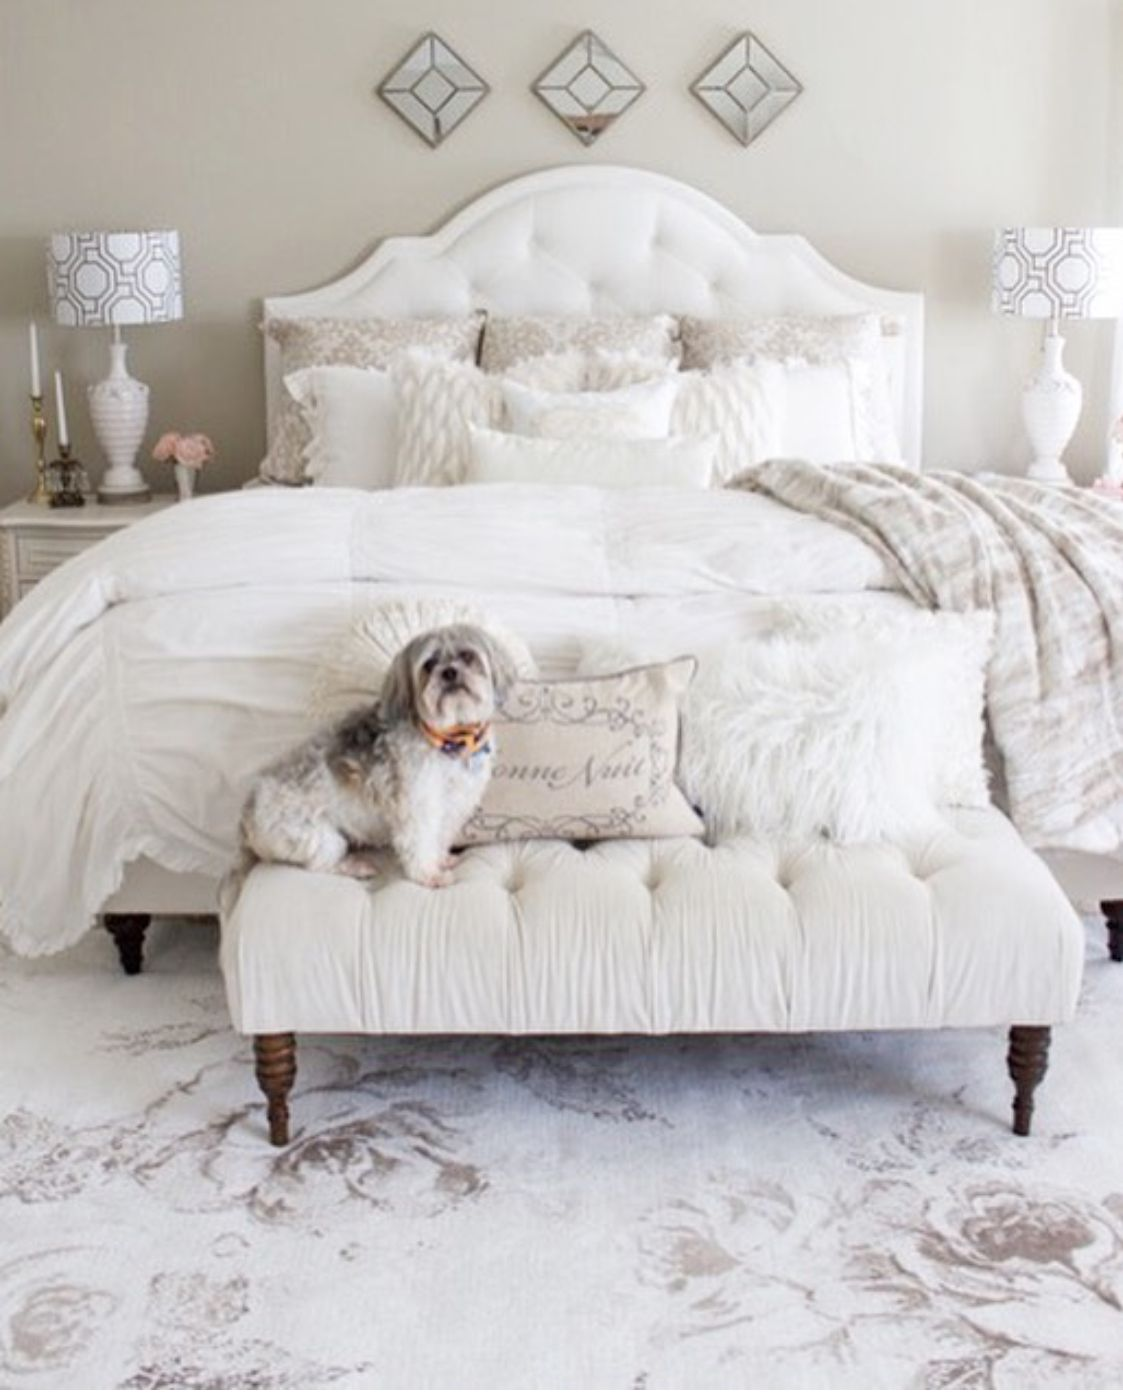 pin by peggie baker on bed in 2019 shabby chic bedrooms rh pinterest com